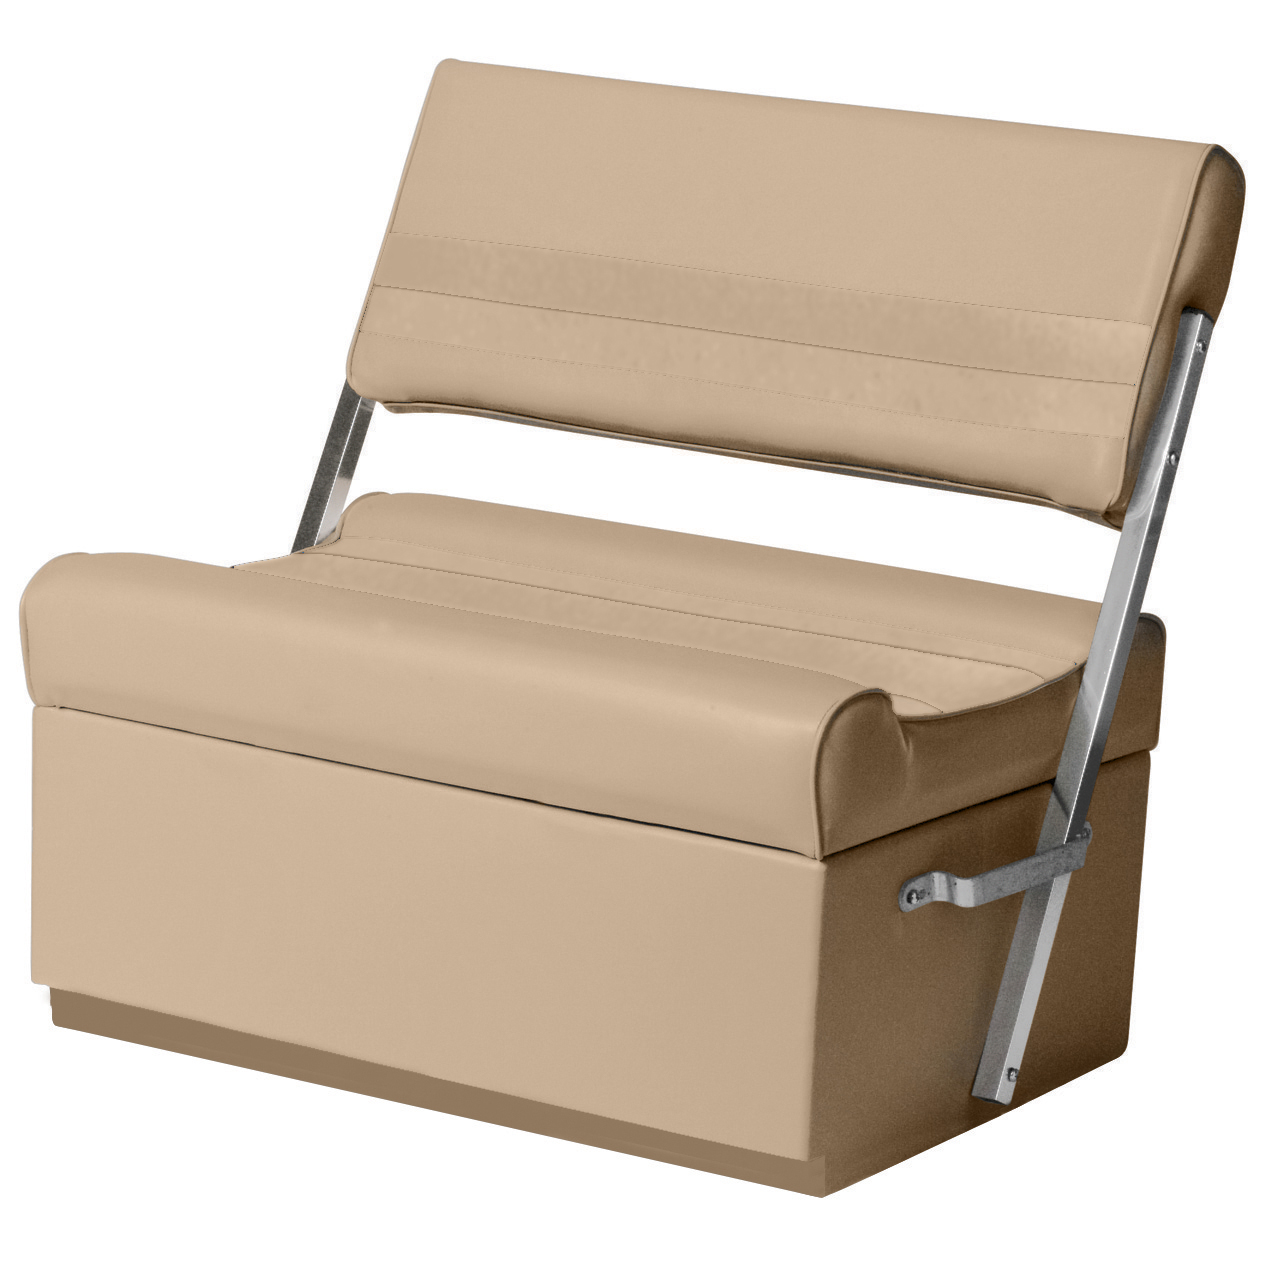 Toonmate Deluxe Pontoon Flip Flop Seat with Toe Kick Base, Sand